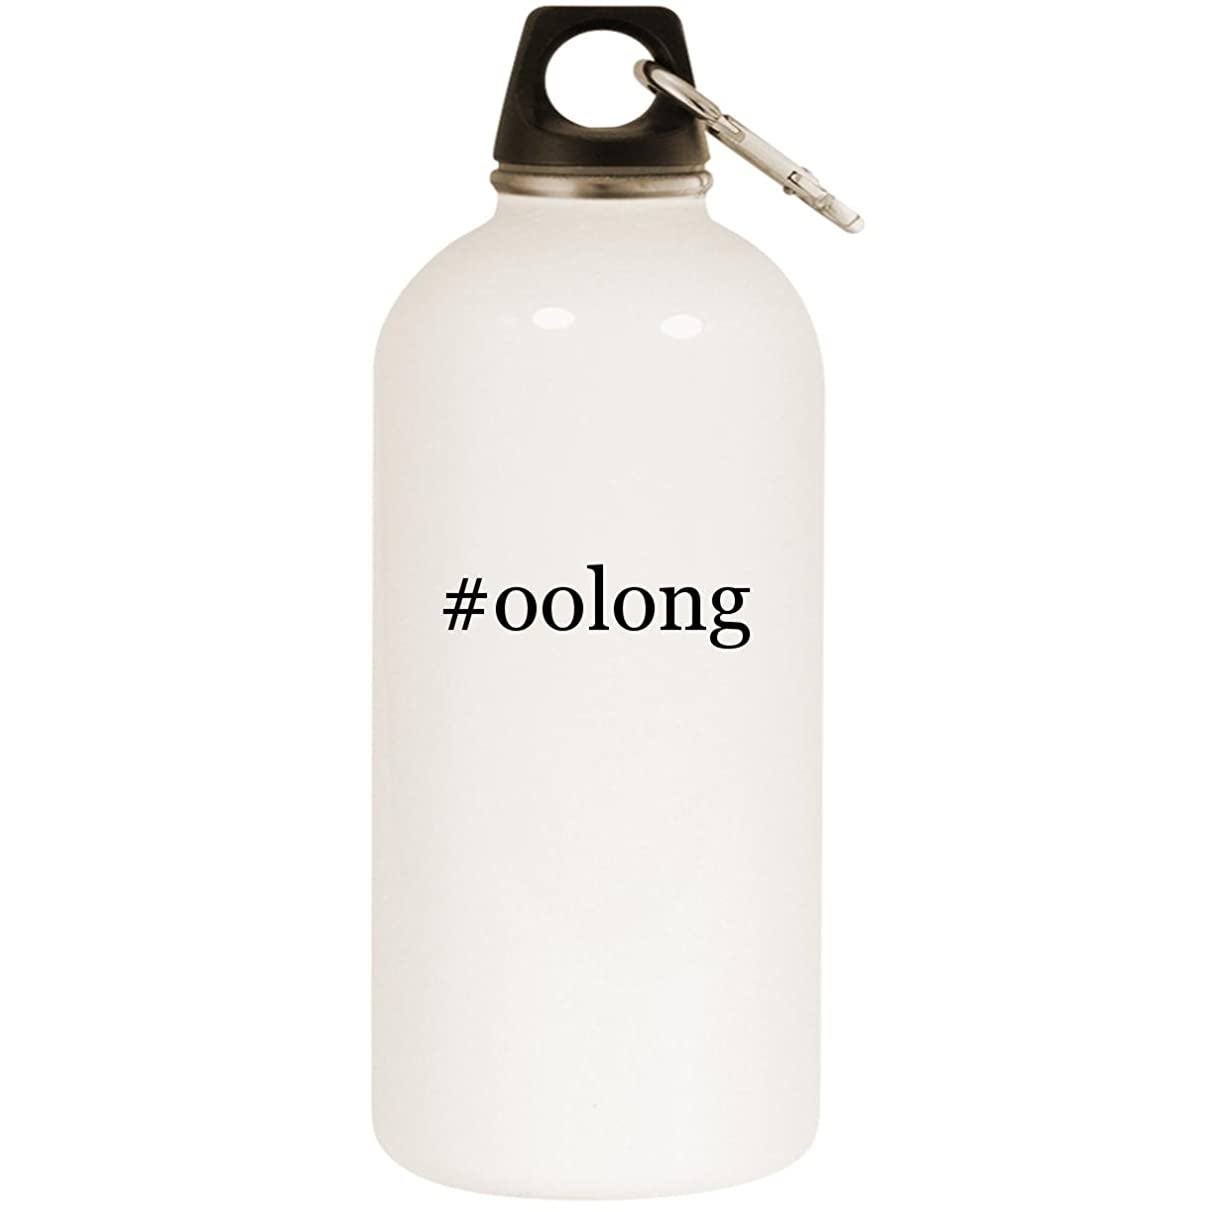 Molandra Products #Oolong - White Hashtag 20oz Stainless Steel Water Bottle with Carabiner